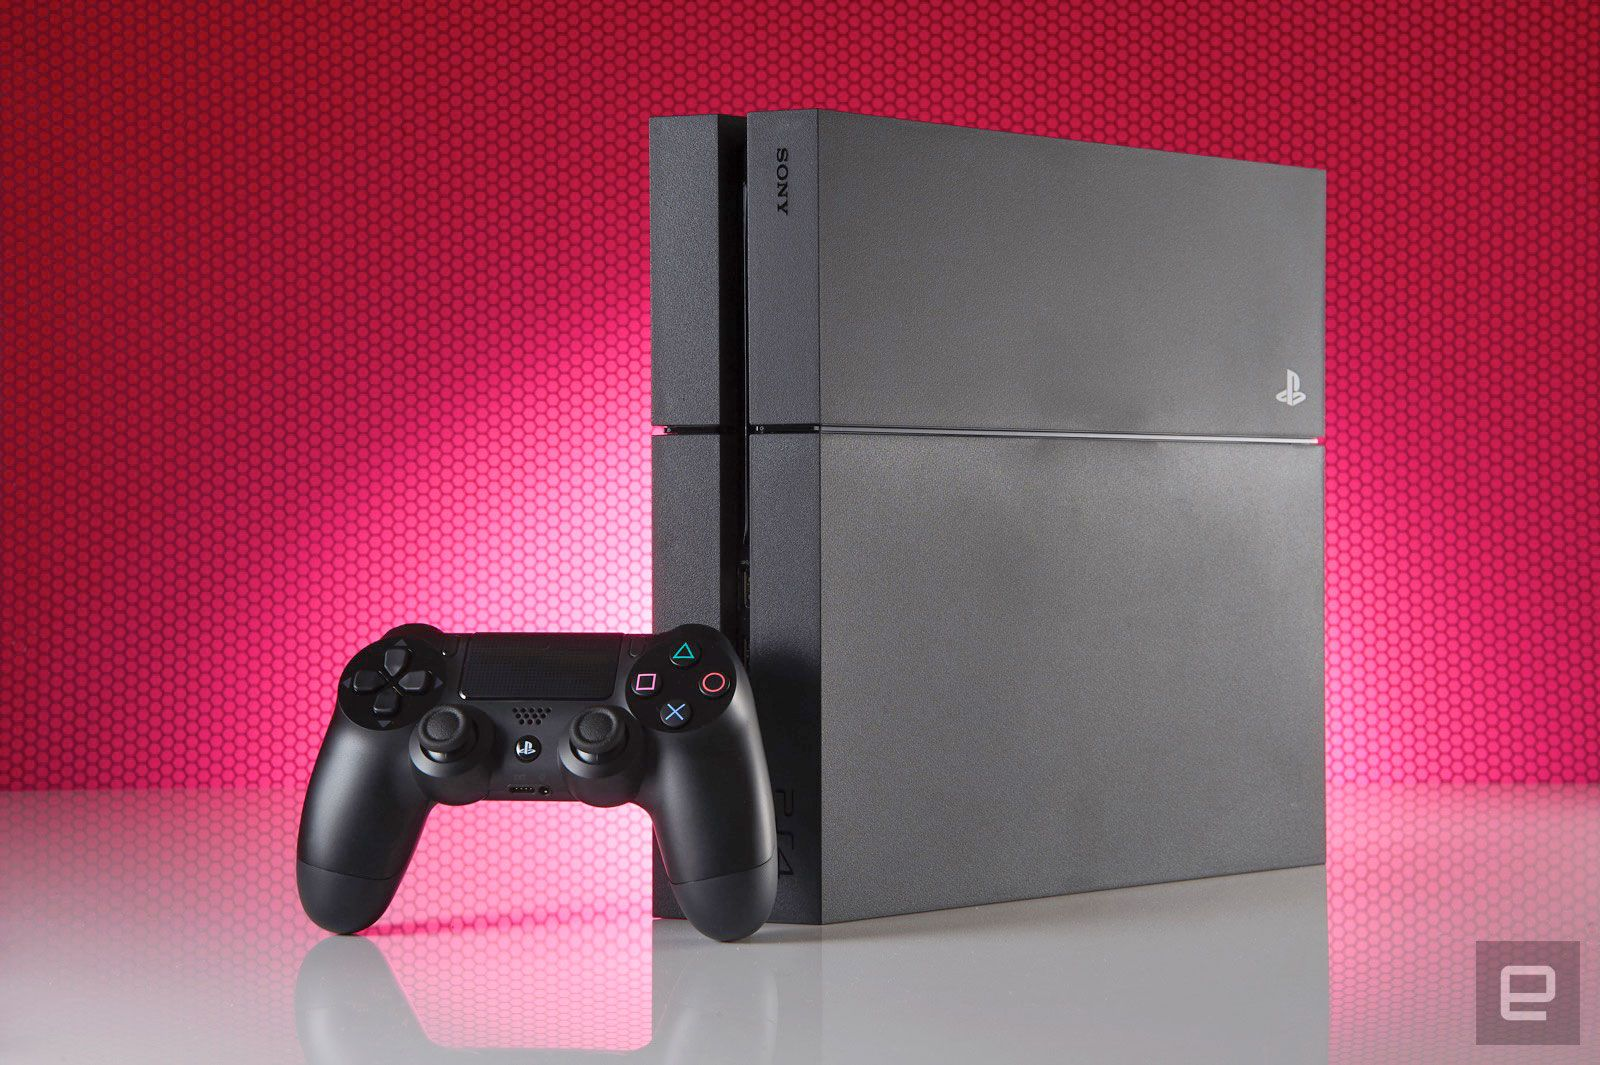 The PlayStation 4 revisited Small improvements for a